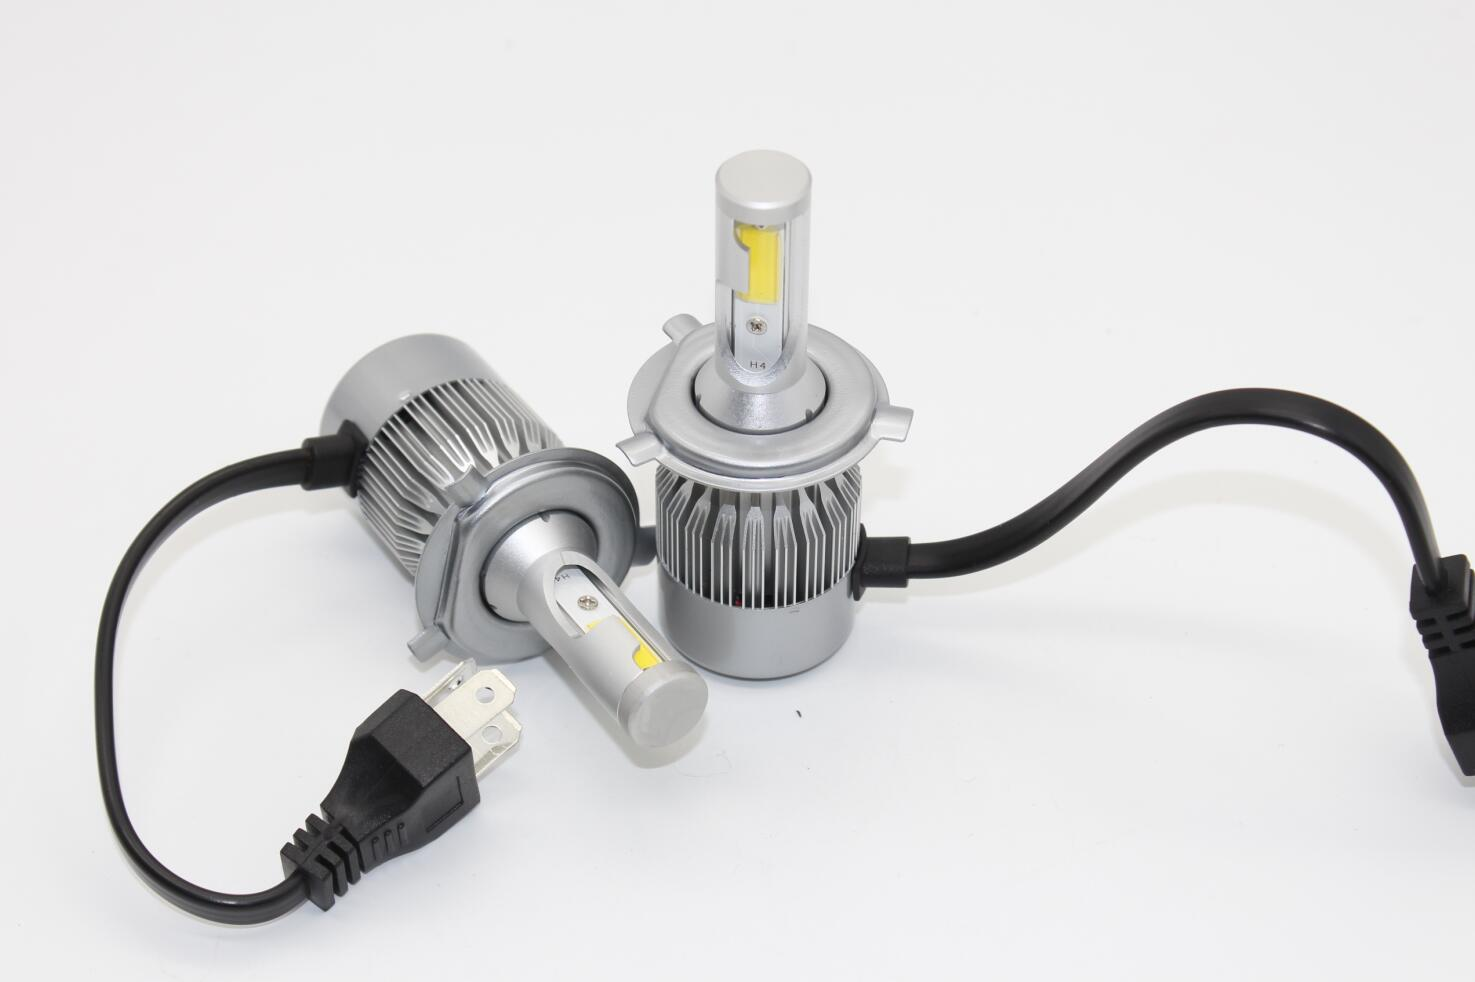 2016 New 12V 40W H1 Car LED Headlight